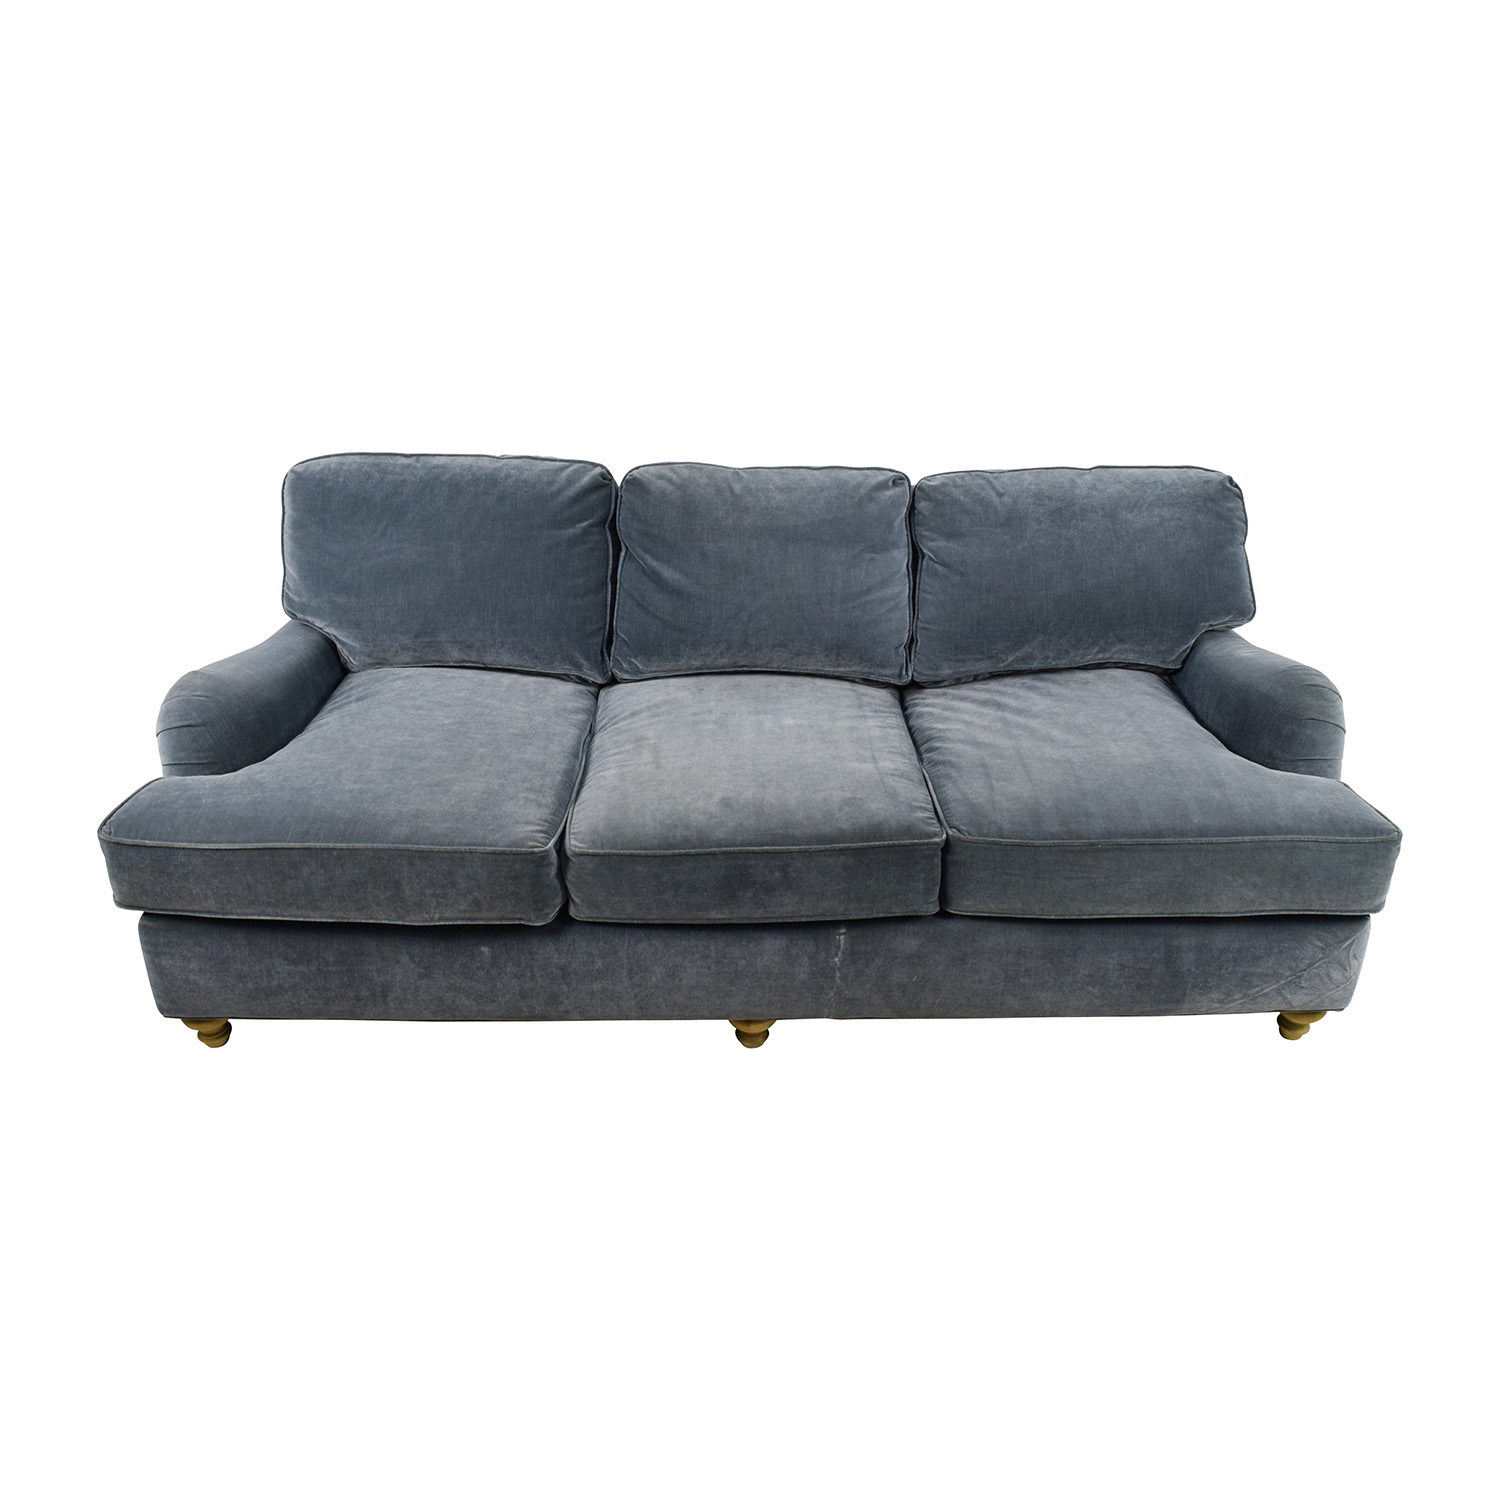 shop Restoration Hardware Restoration Hardware English Roll Arm 84 Sleeper Sofa online